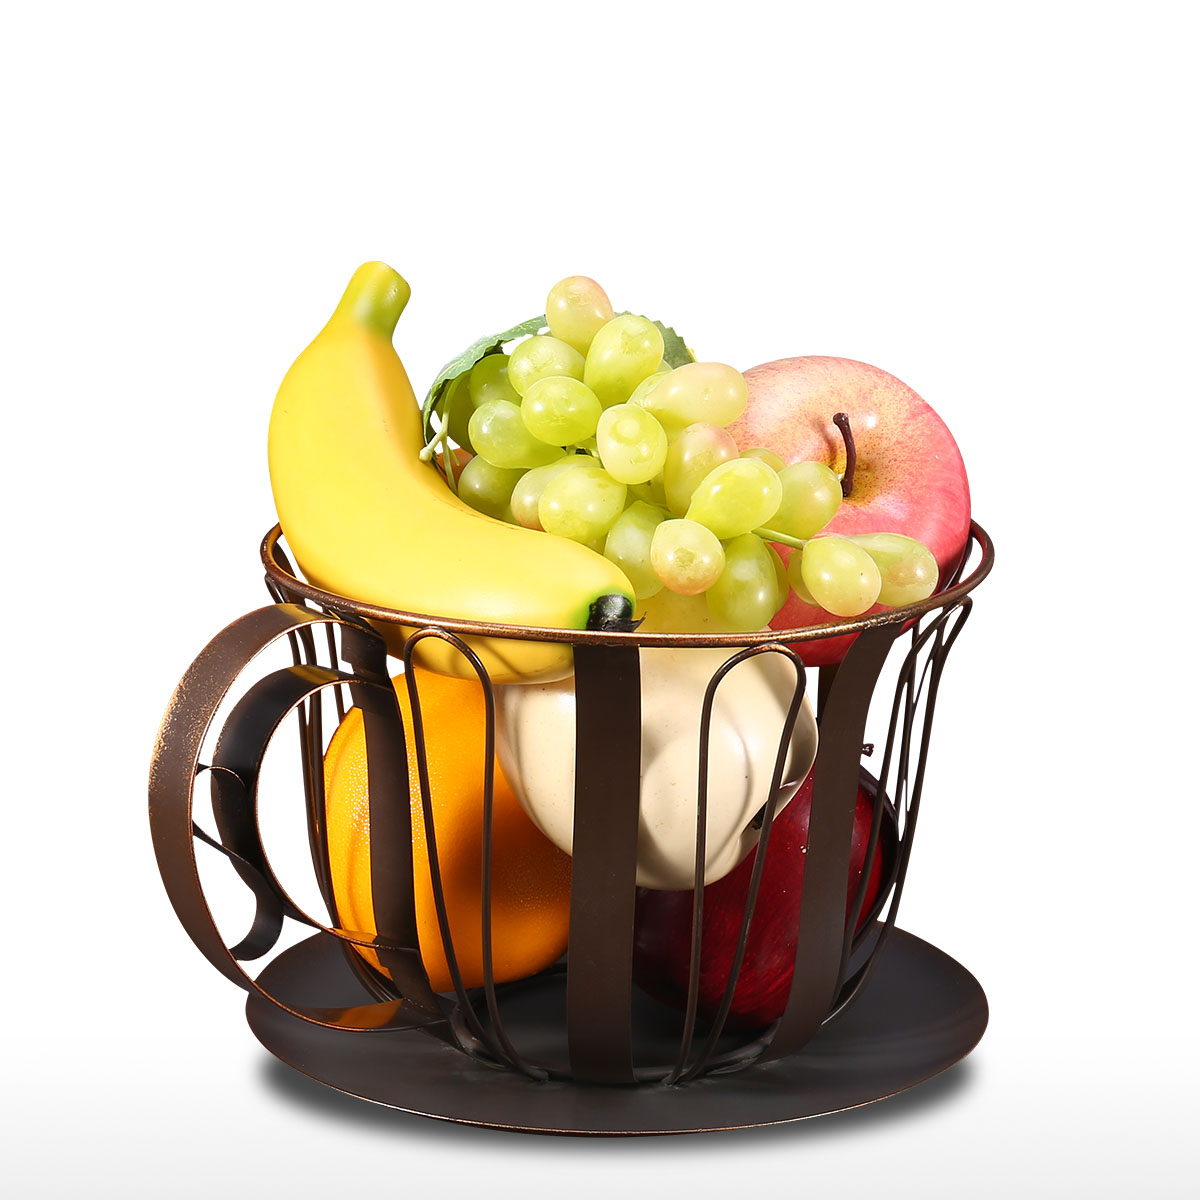 Practical Brown Coffee Pod Container Espresso Pod Holder Fruits Storage Basket Handcrafted From Wrought Iron Storage Baskets